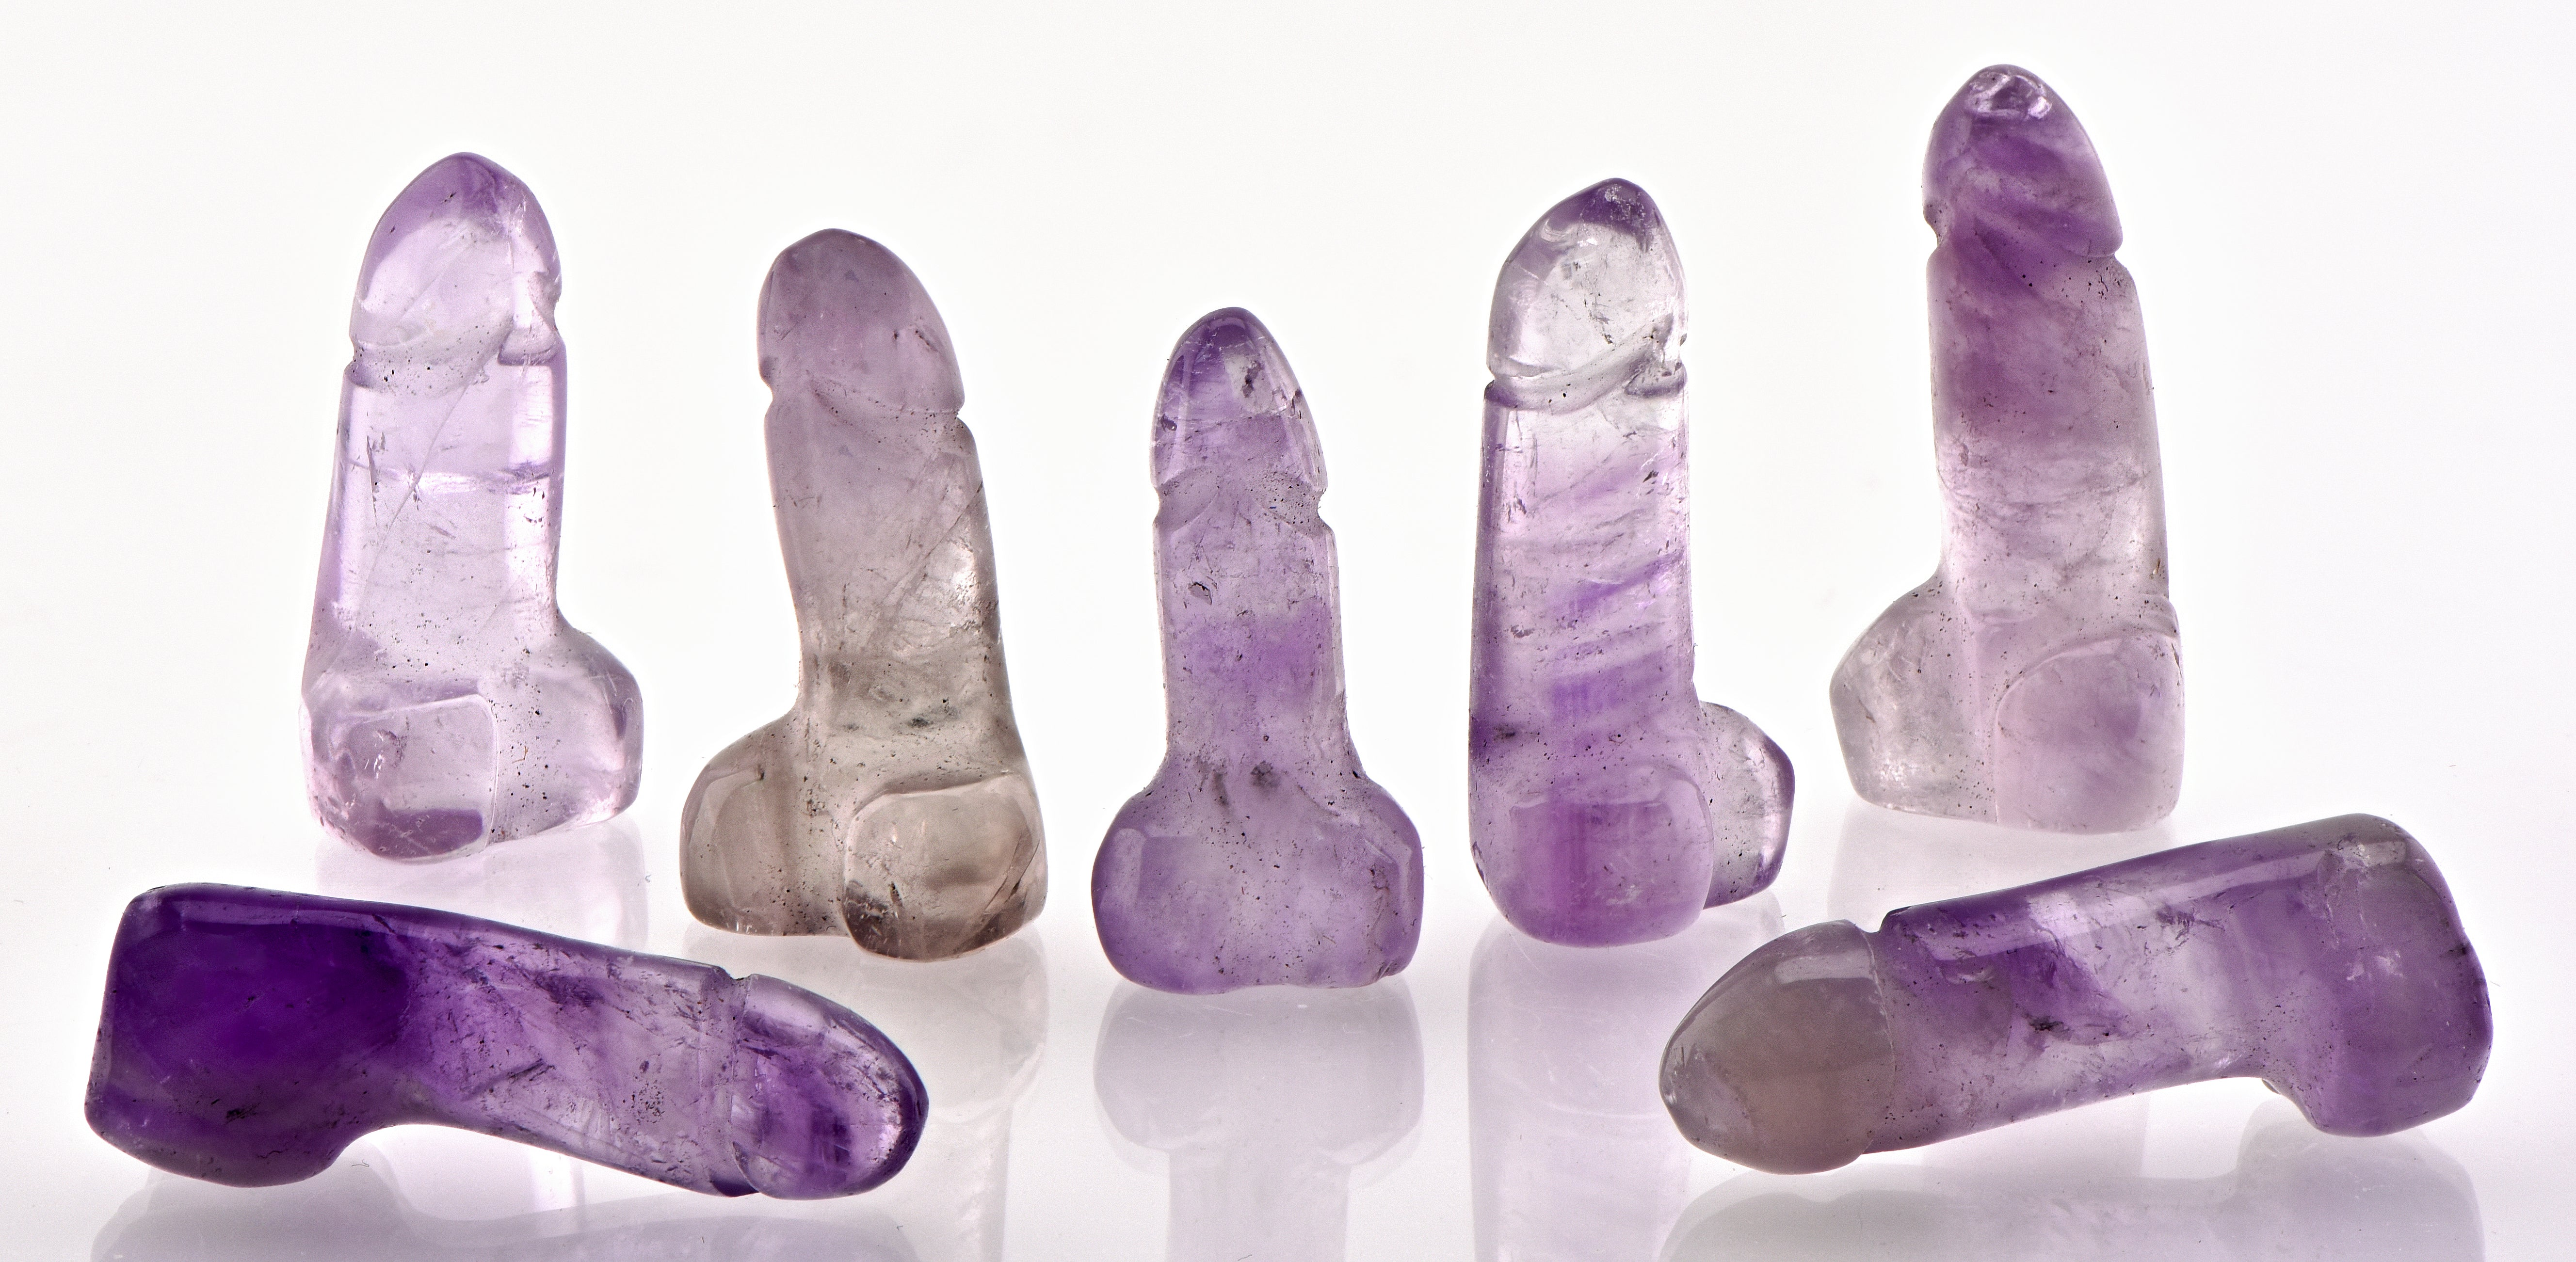 Gemstone Carvings, Phalluses, and More